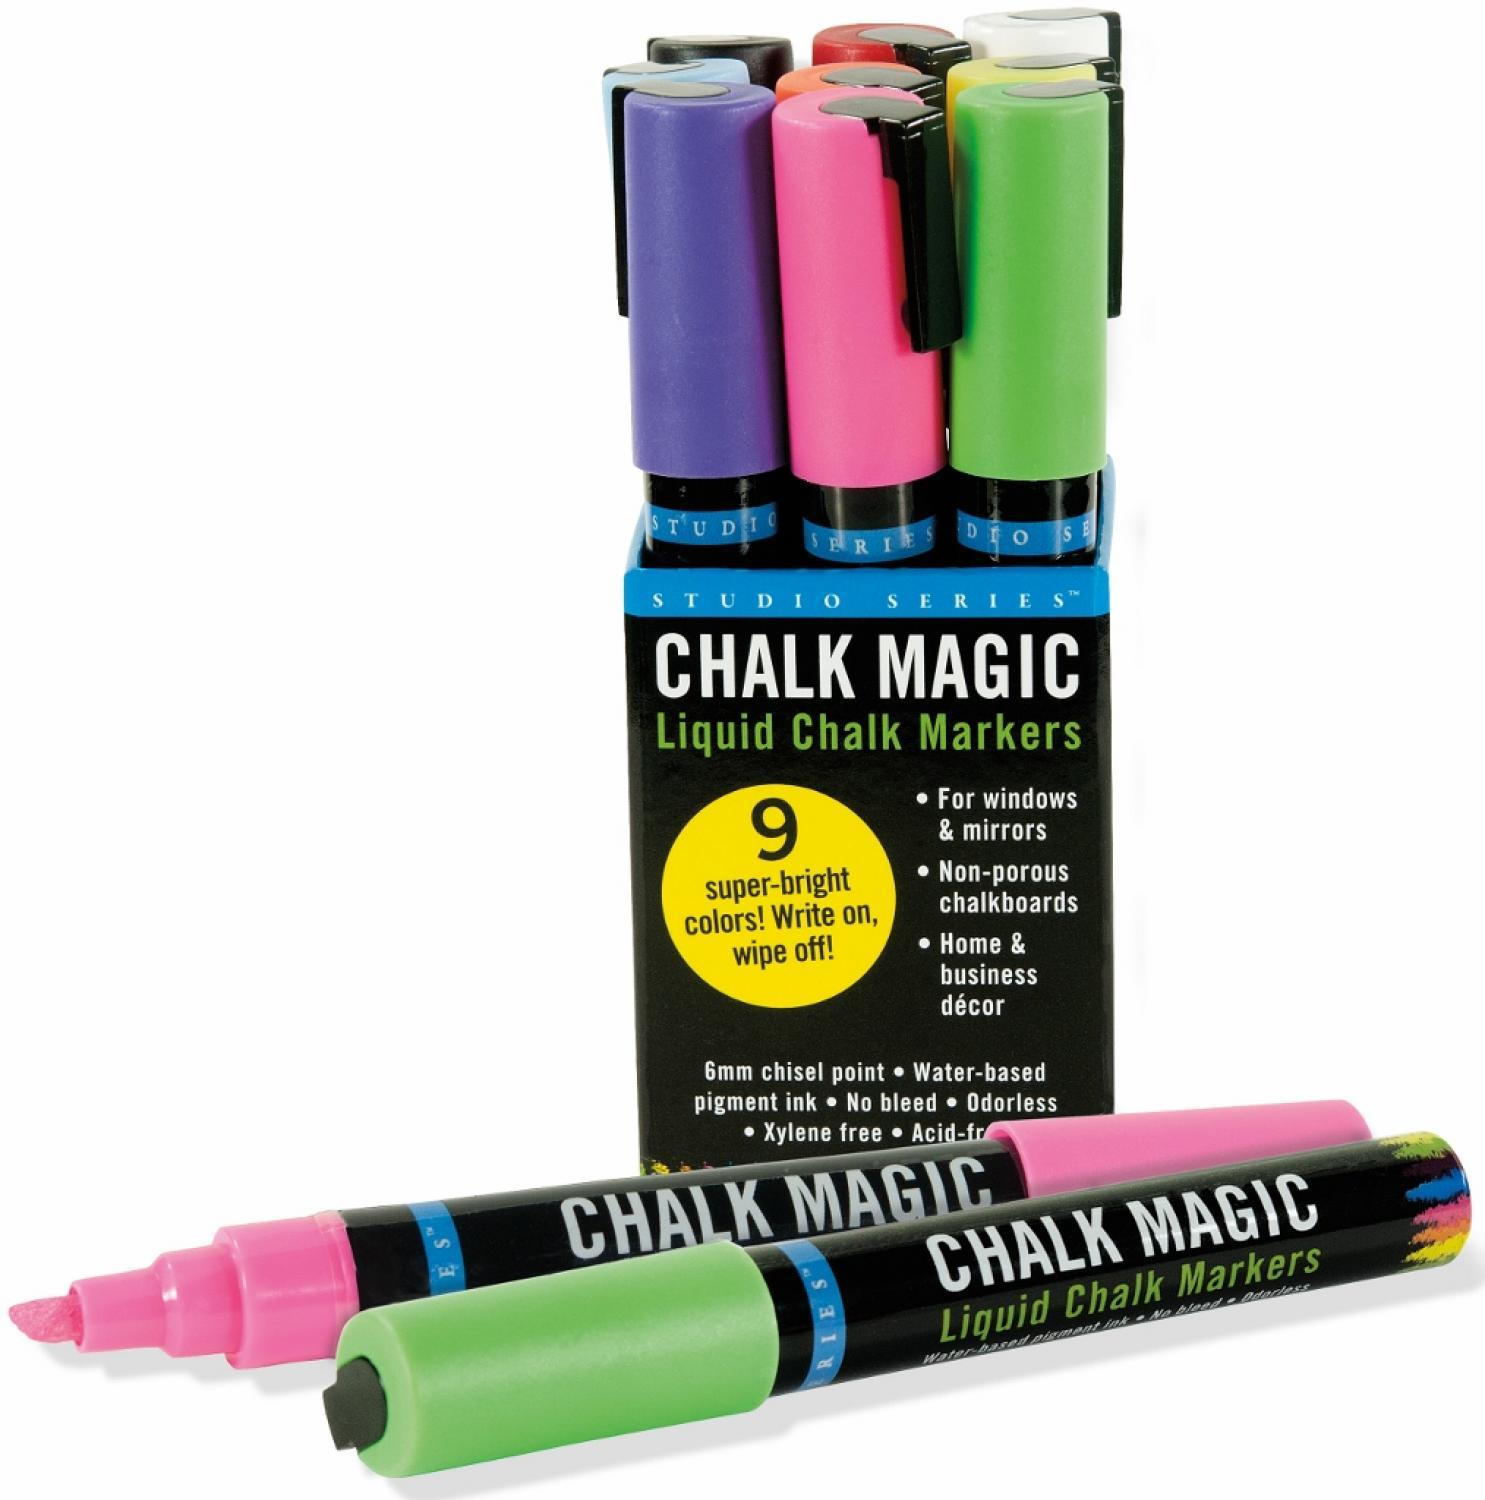 Chalk Magic Liquid Chalk